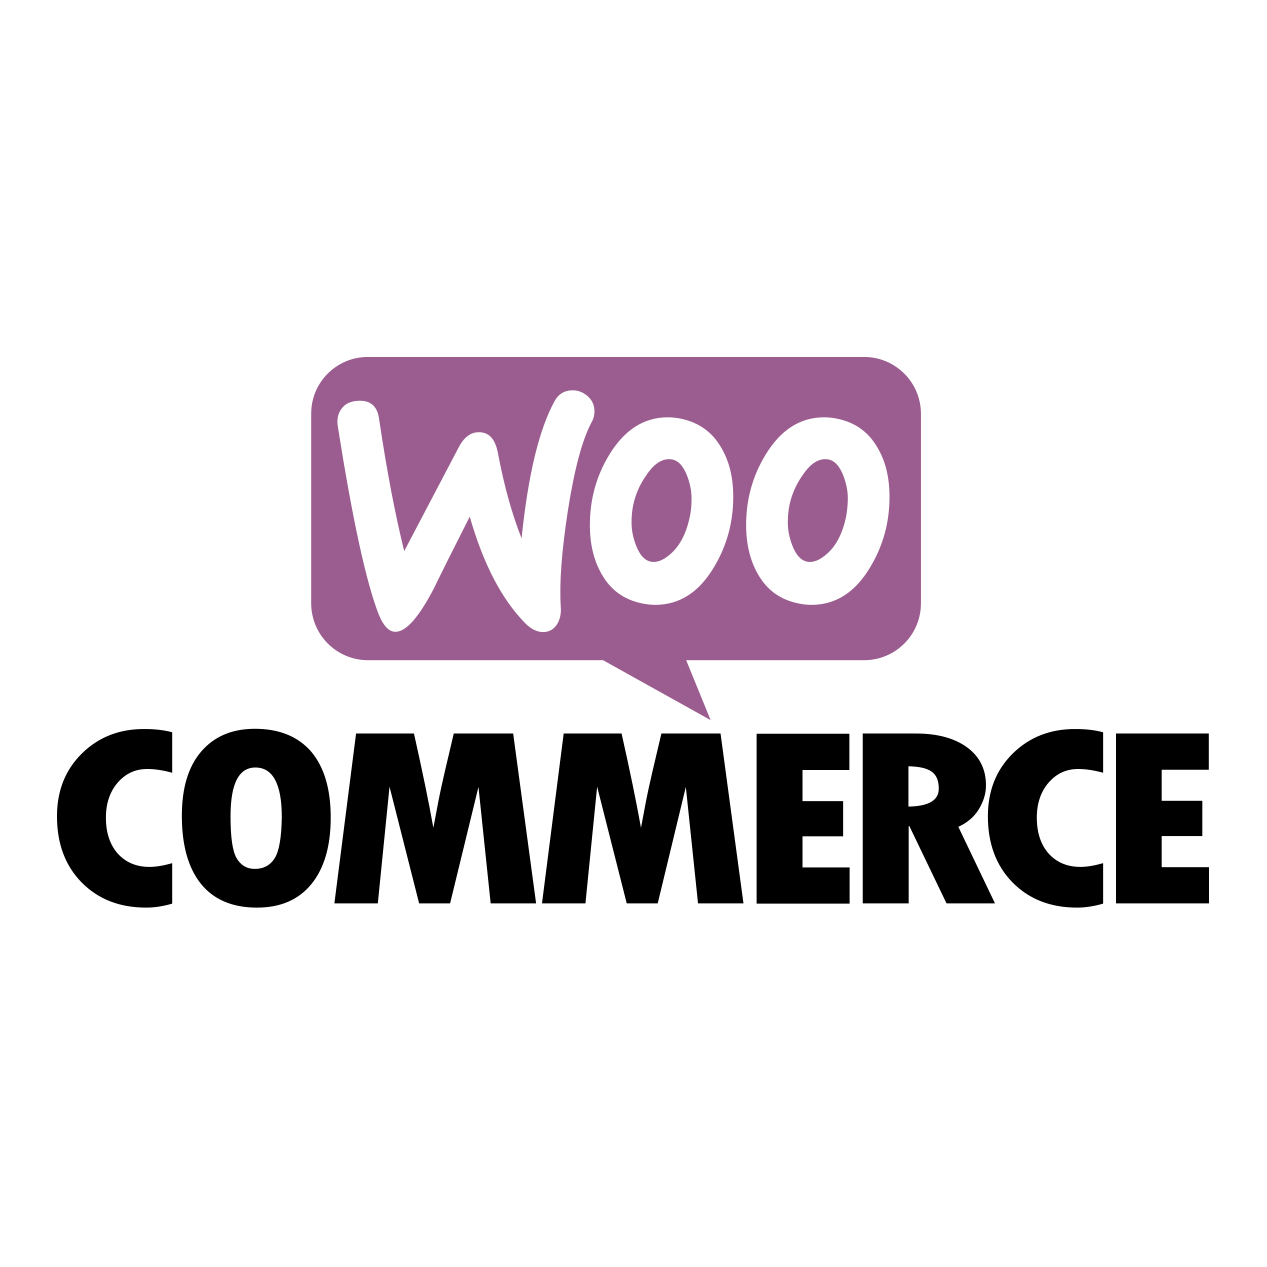 WooCommerce Wordpress ontwikkelen developer design seo seo-optimalisatie optimalisatie